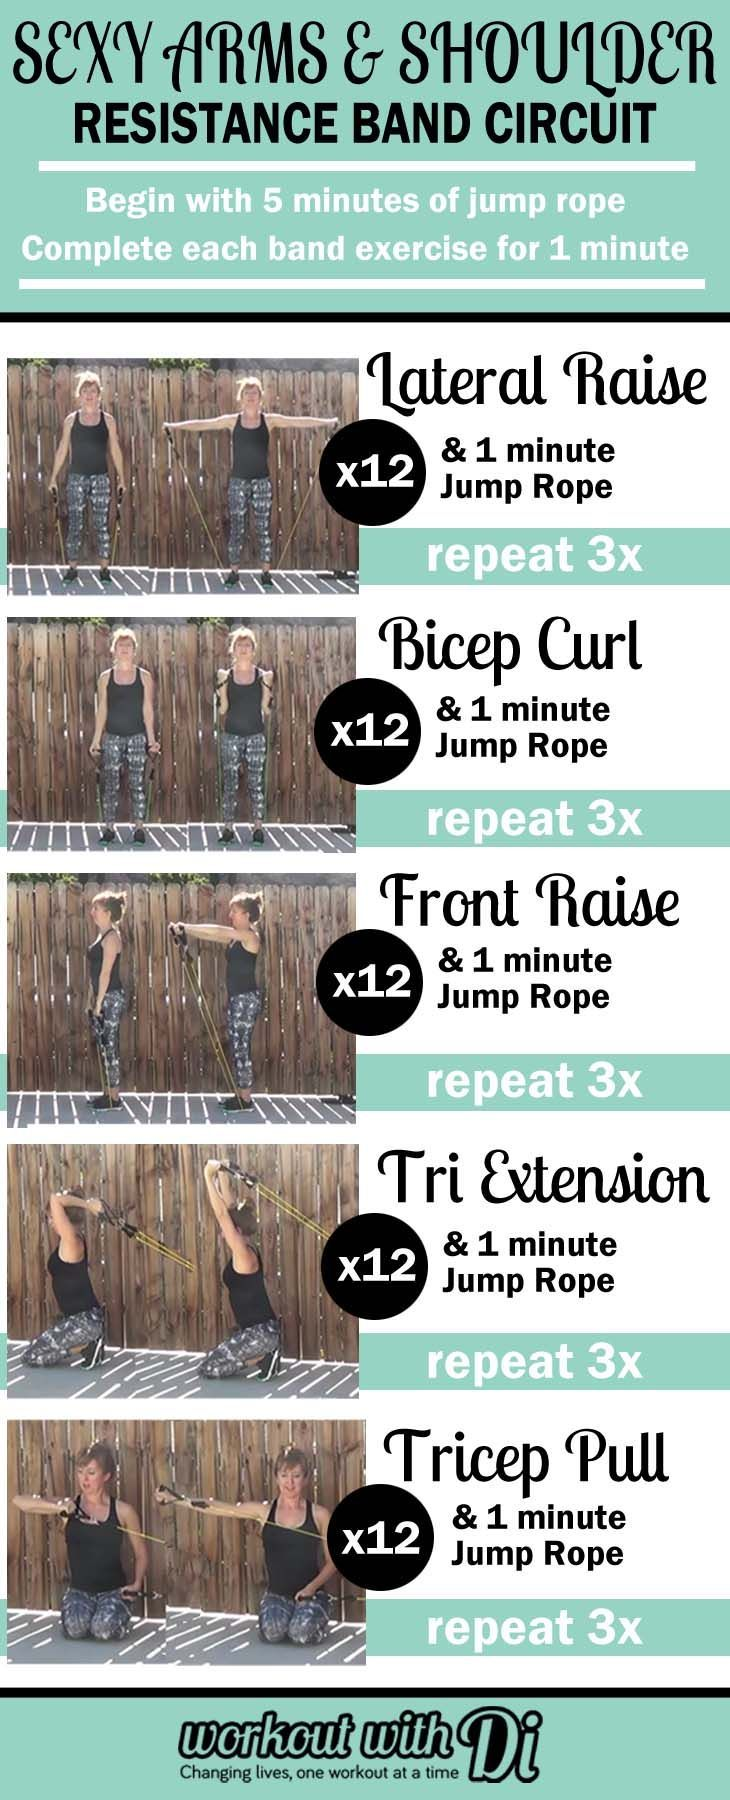 Looking to get slender toned arms for Summer?  Try incorporating this interval workout using resistance bands 2-3 times a week into your workout routine.   Perfect for beginners and seasoned exercises alike!